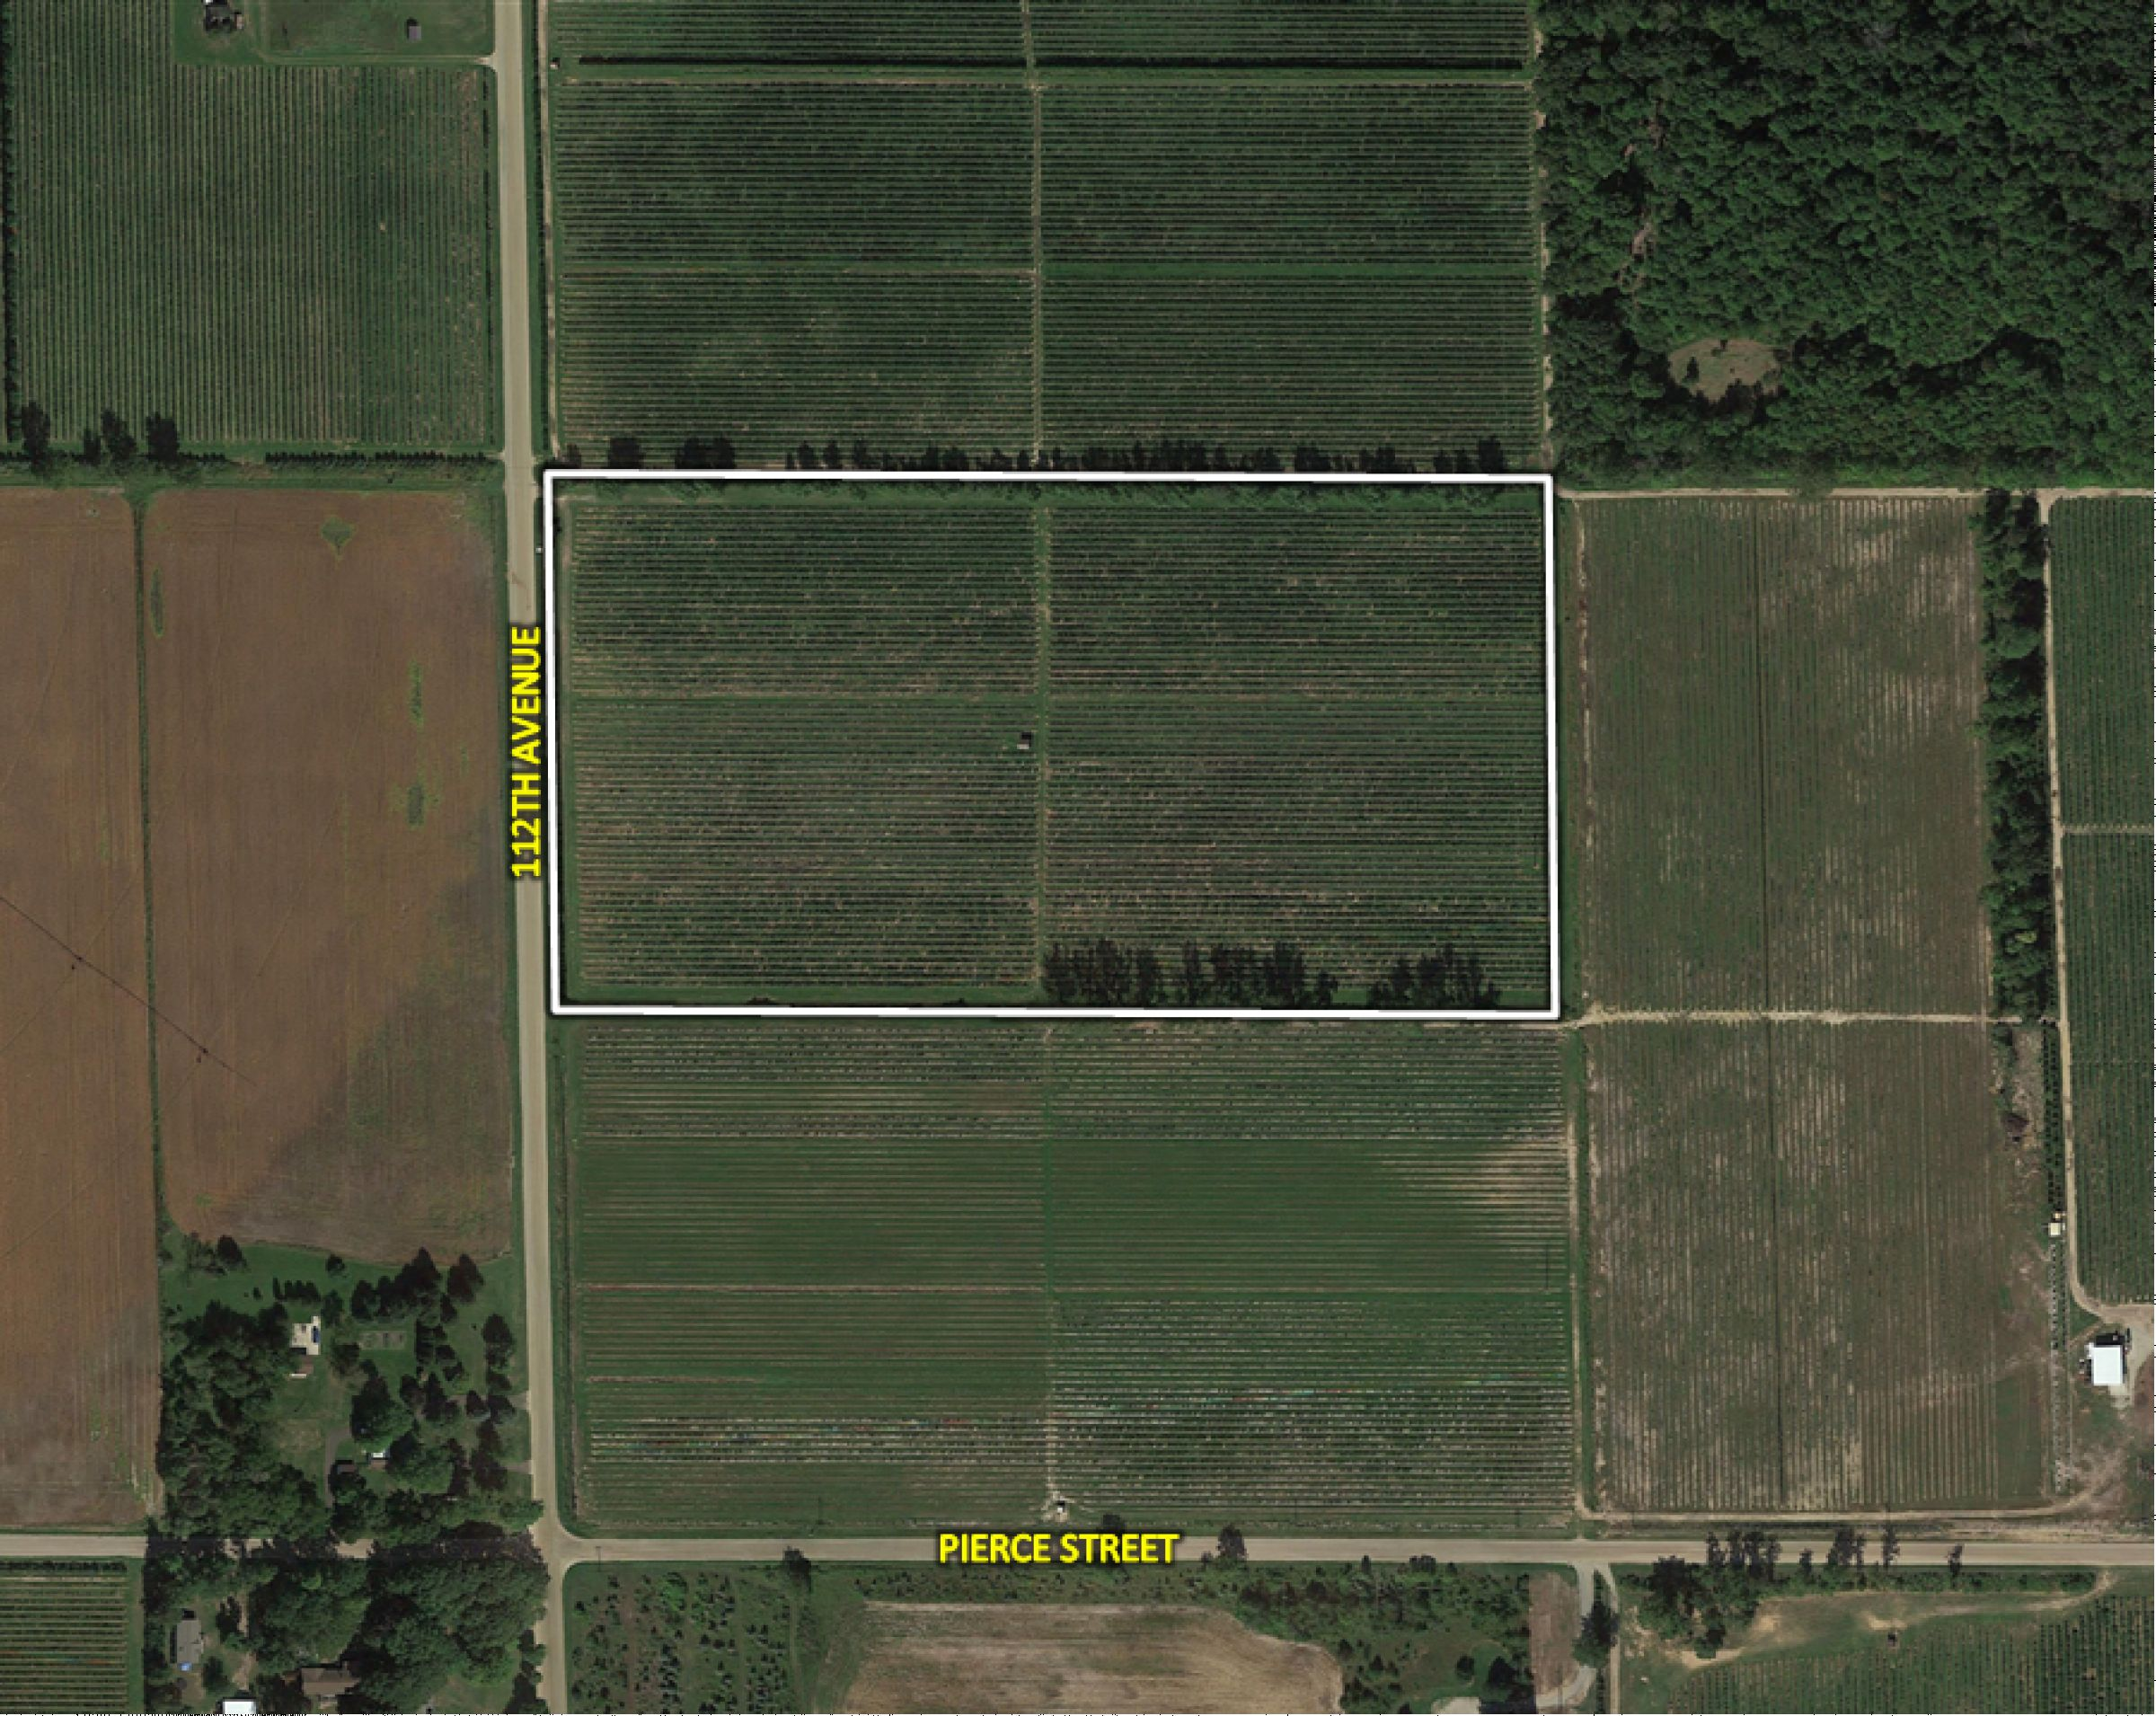 5-112th-avenue-farm-holland-49422-0-2020-12-22-230605.png